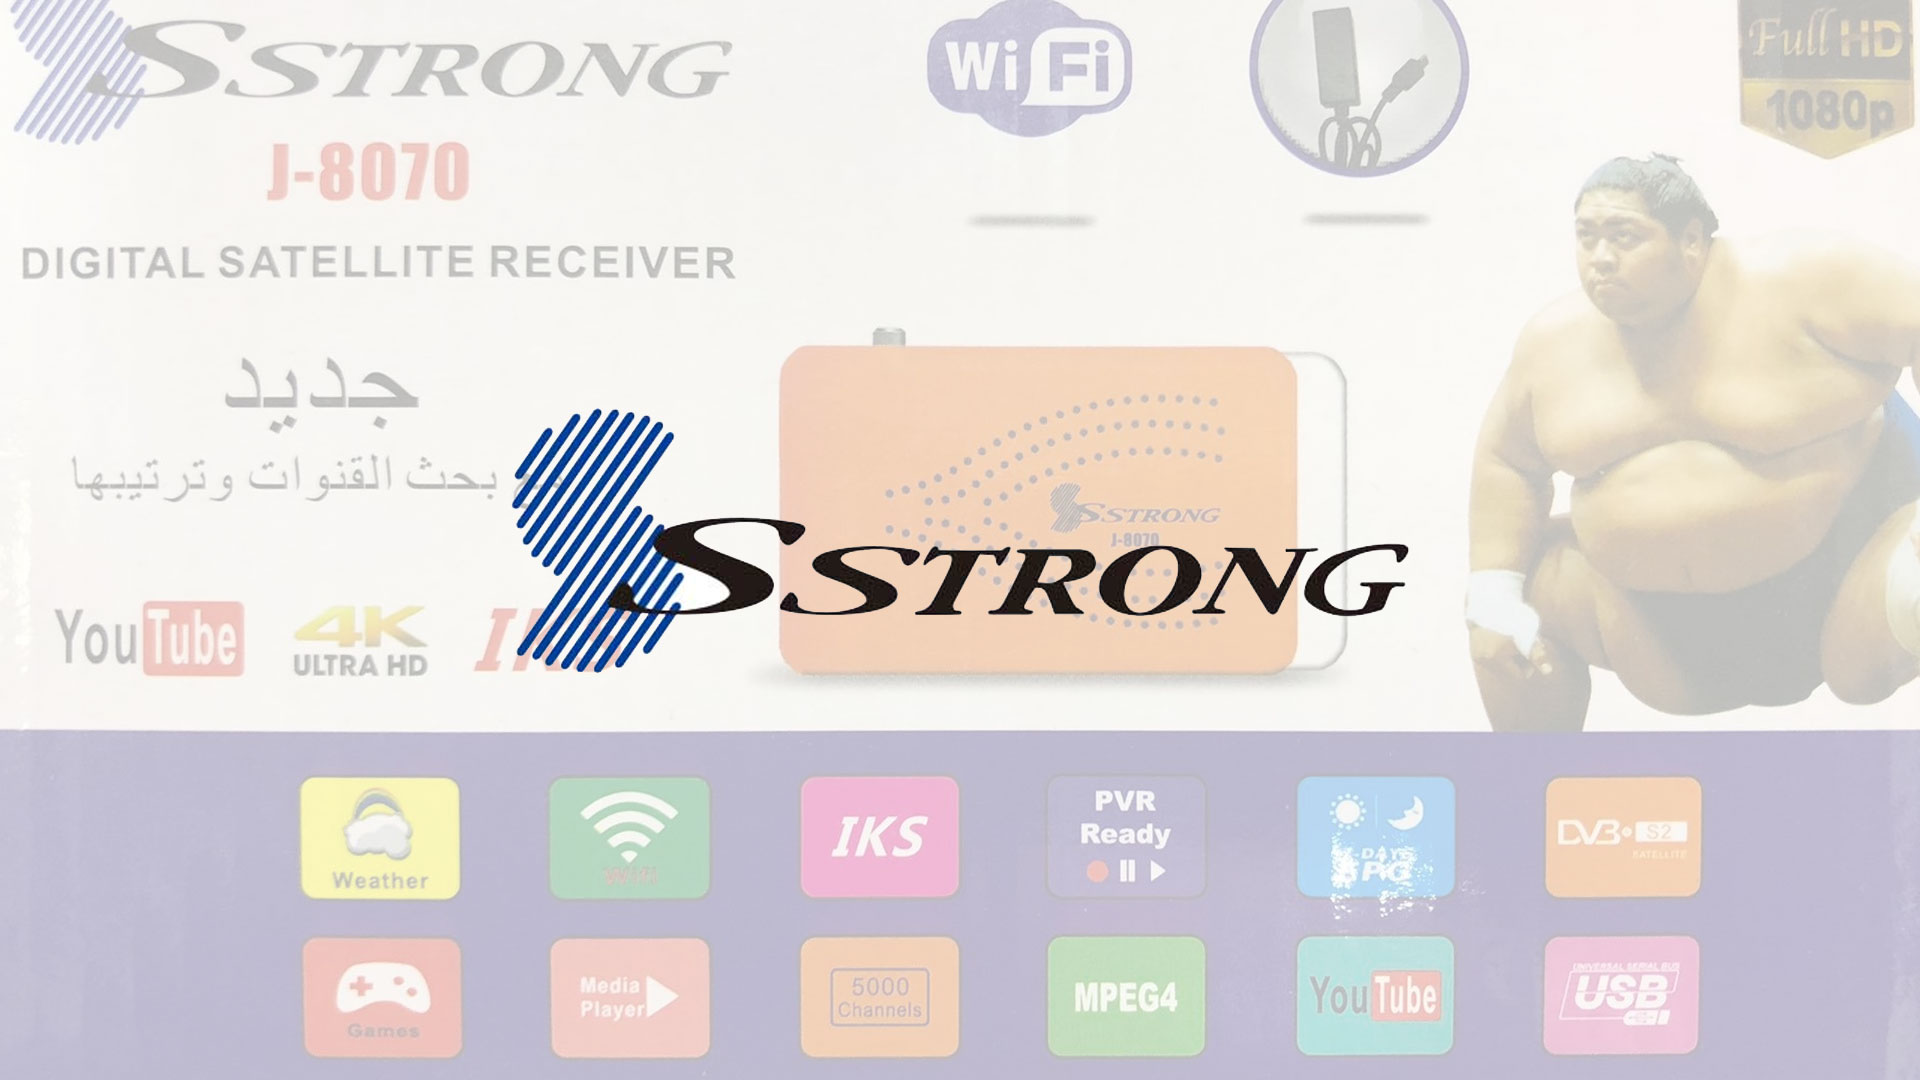 Download Software Strong J 8070 Update New Firmware Receiver